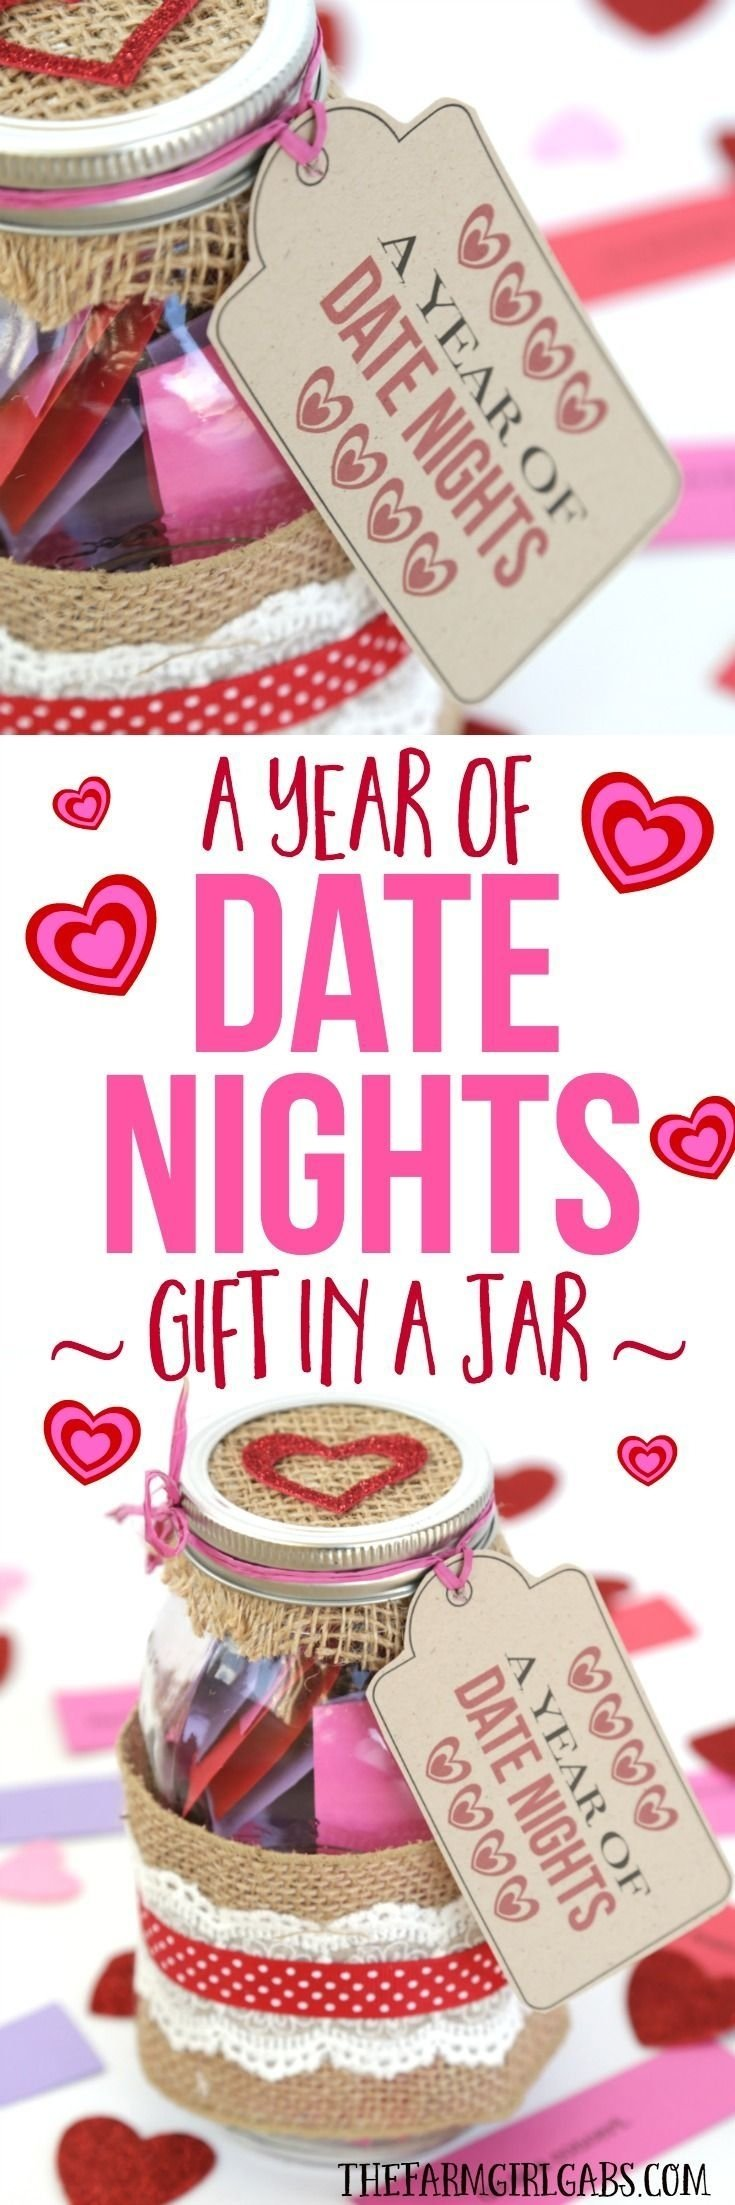 10 Attractive Date Night Ideas On A Budget 975 best date night on a budget images on pinterest a romantic 2020